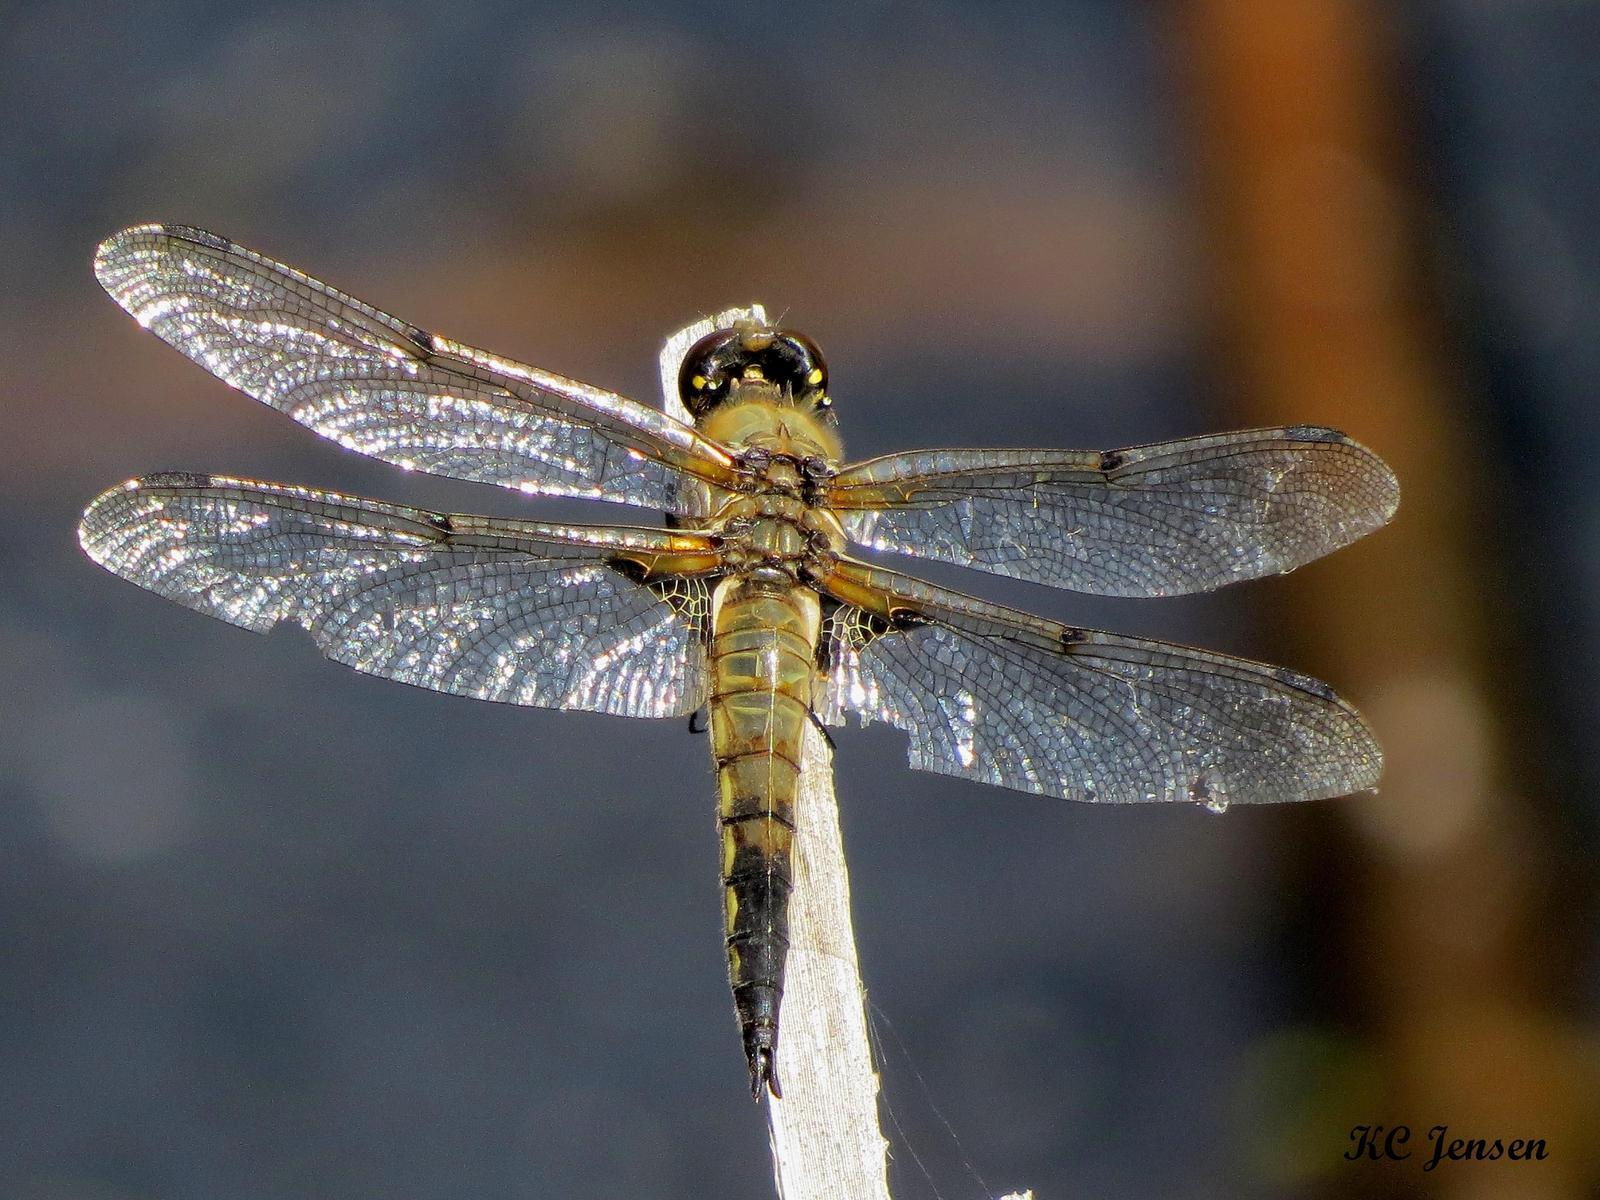 Four-spotted Skimmer Photo by Kent Jensen